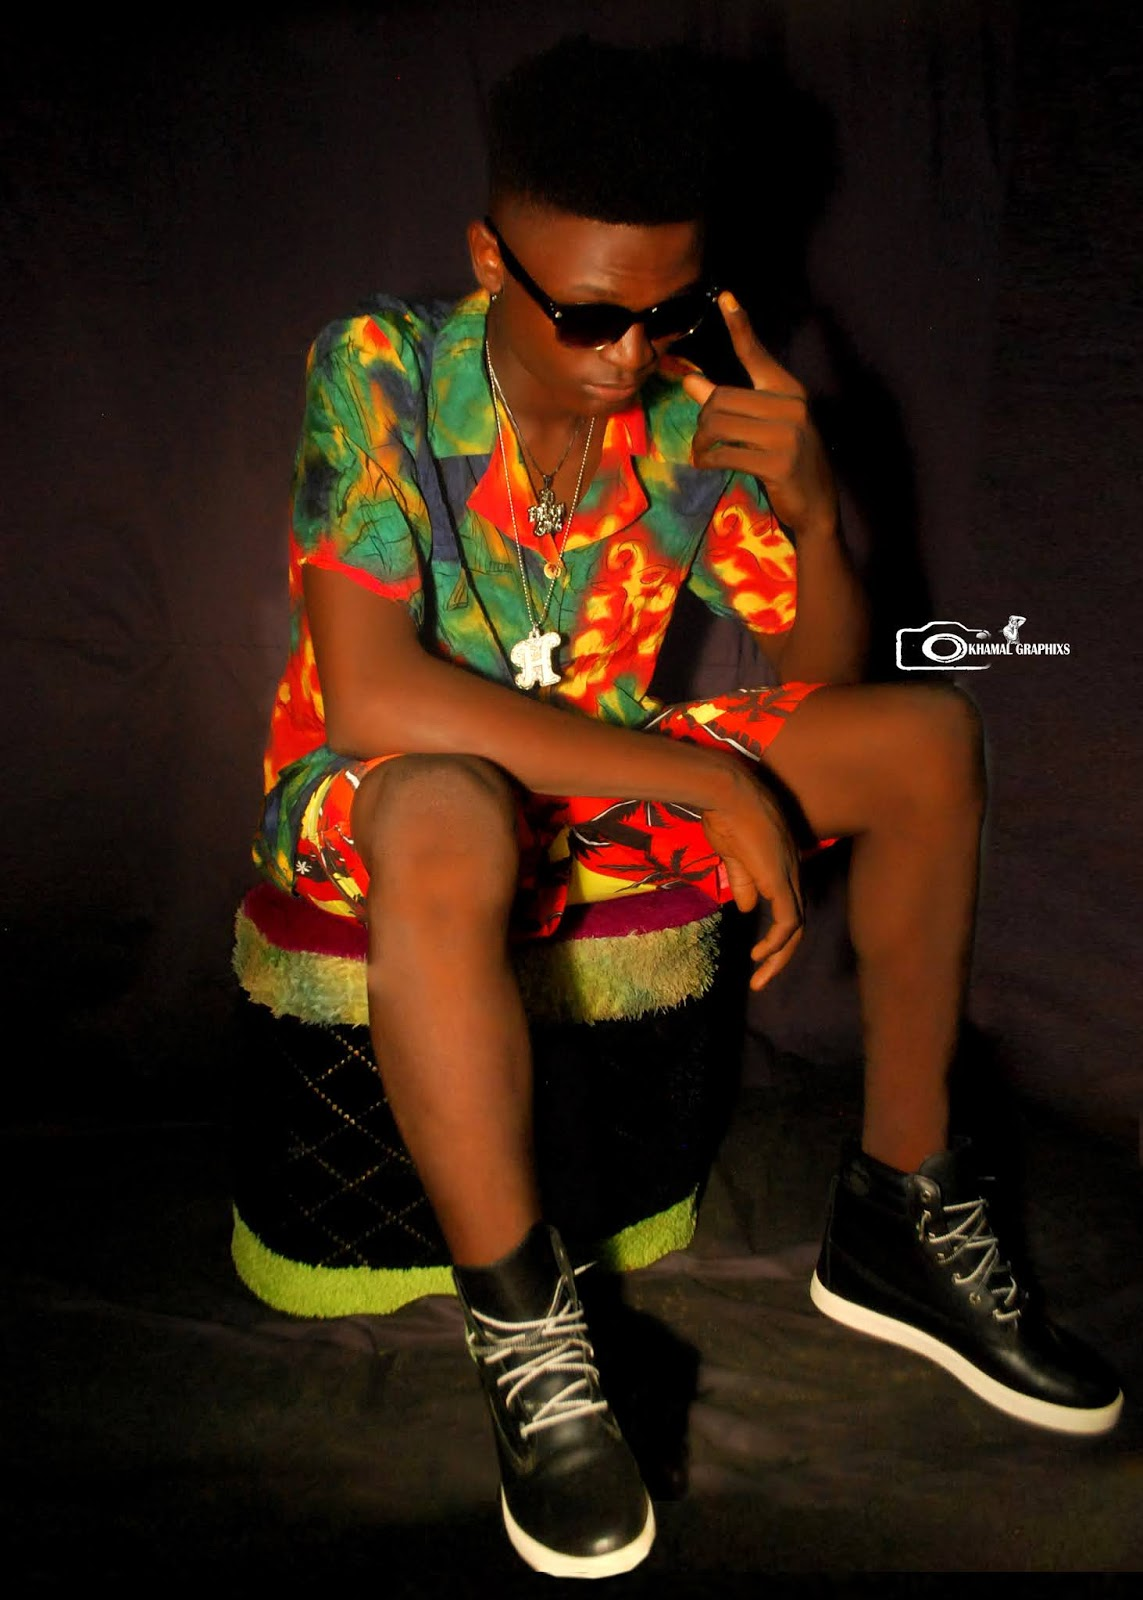 [Artist Biography] Dinxy Hotking - based in Abuja #Arewapublisize